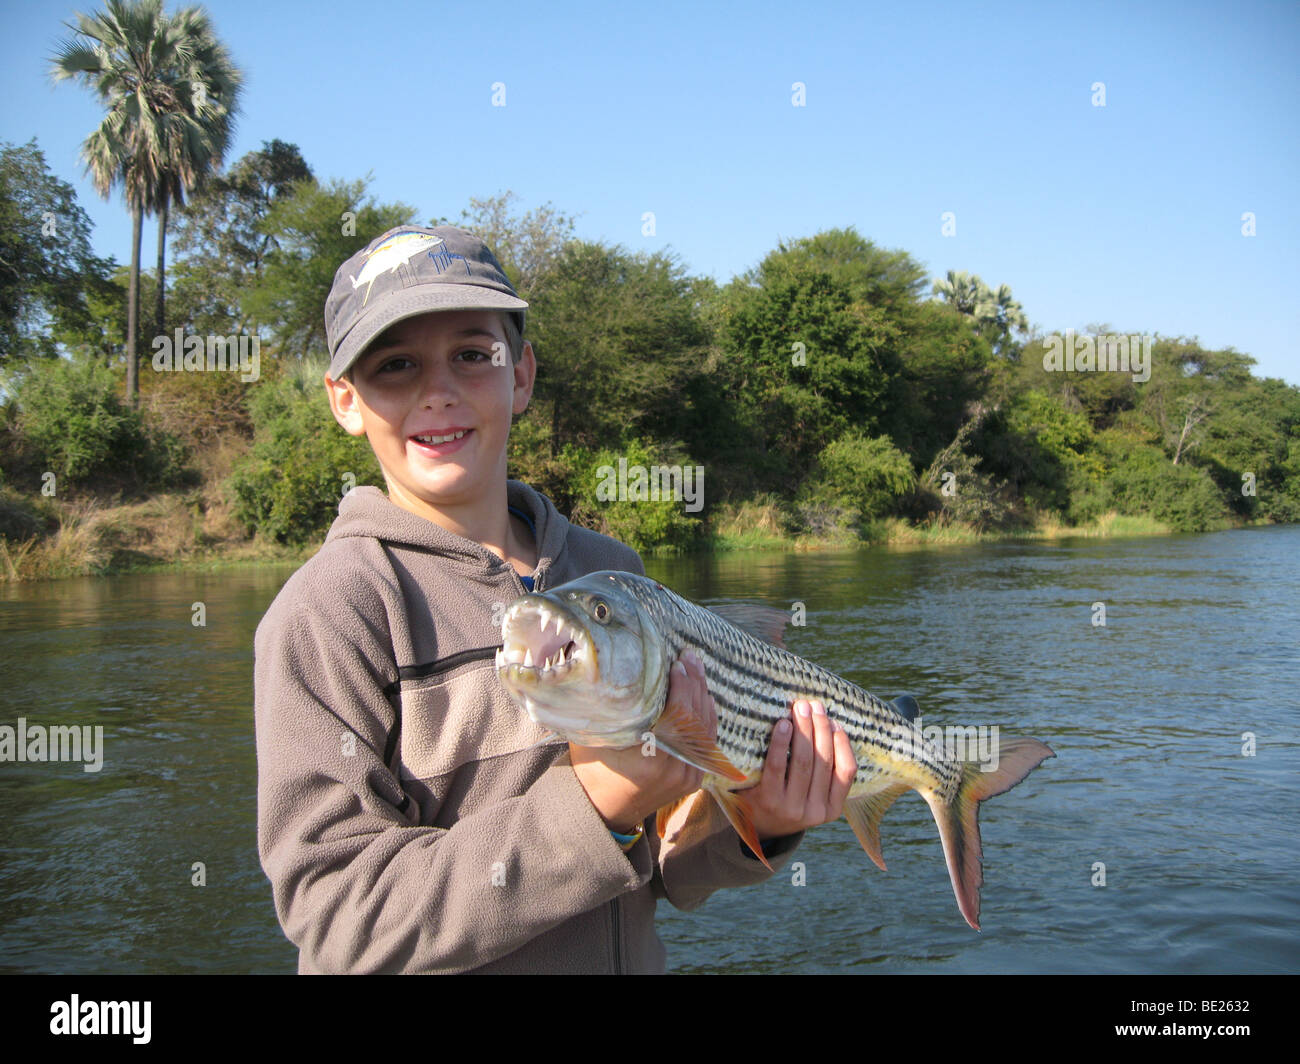 Young boy holding large tiger fish he has just caught Zambesi River Zambia - Stock Image